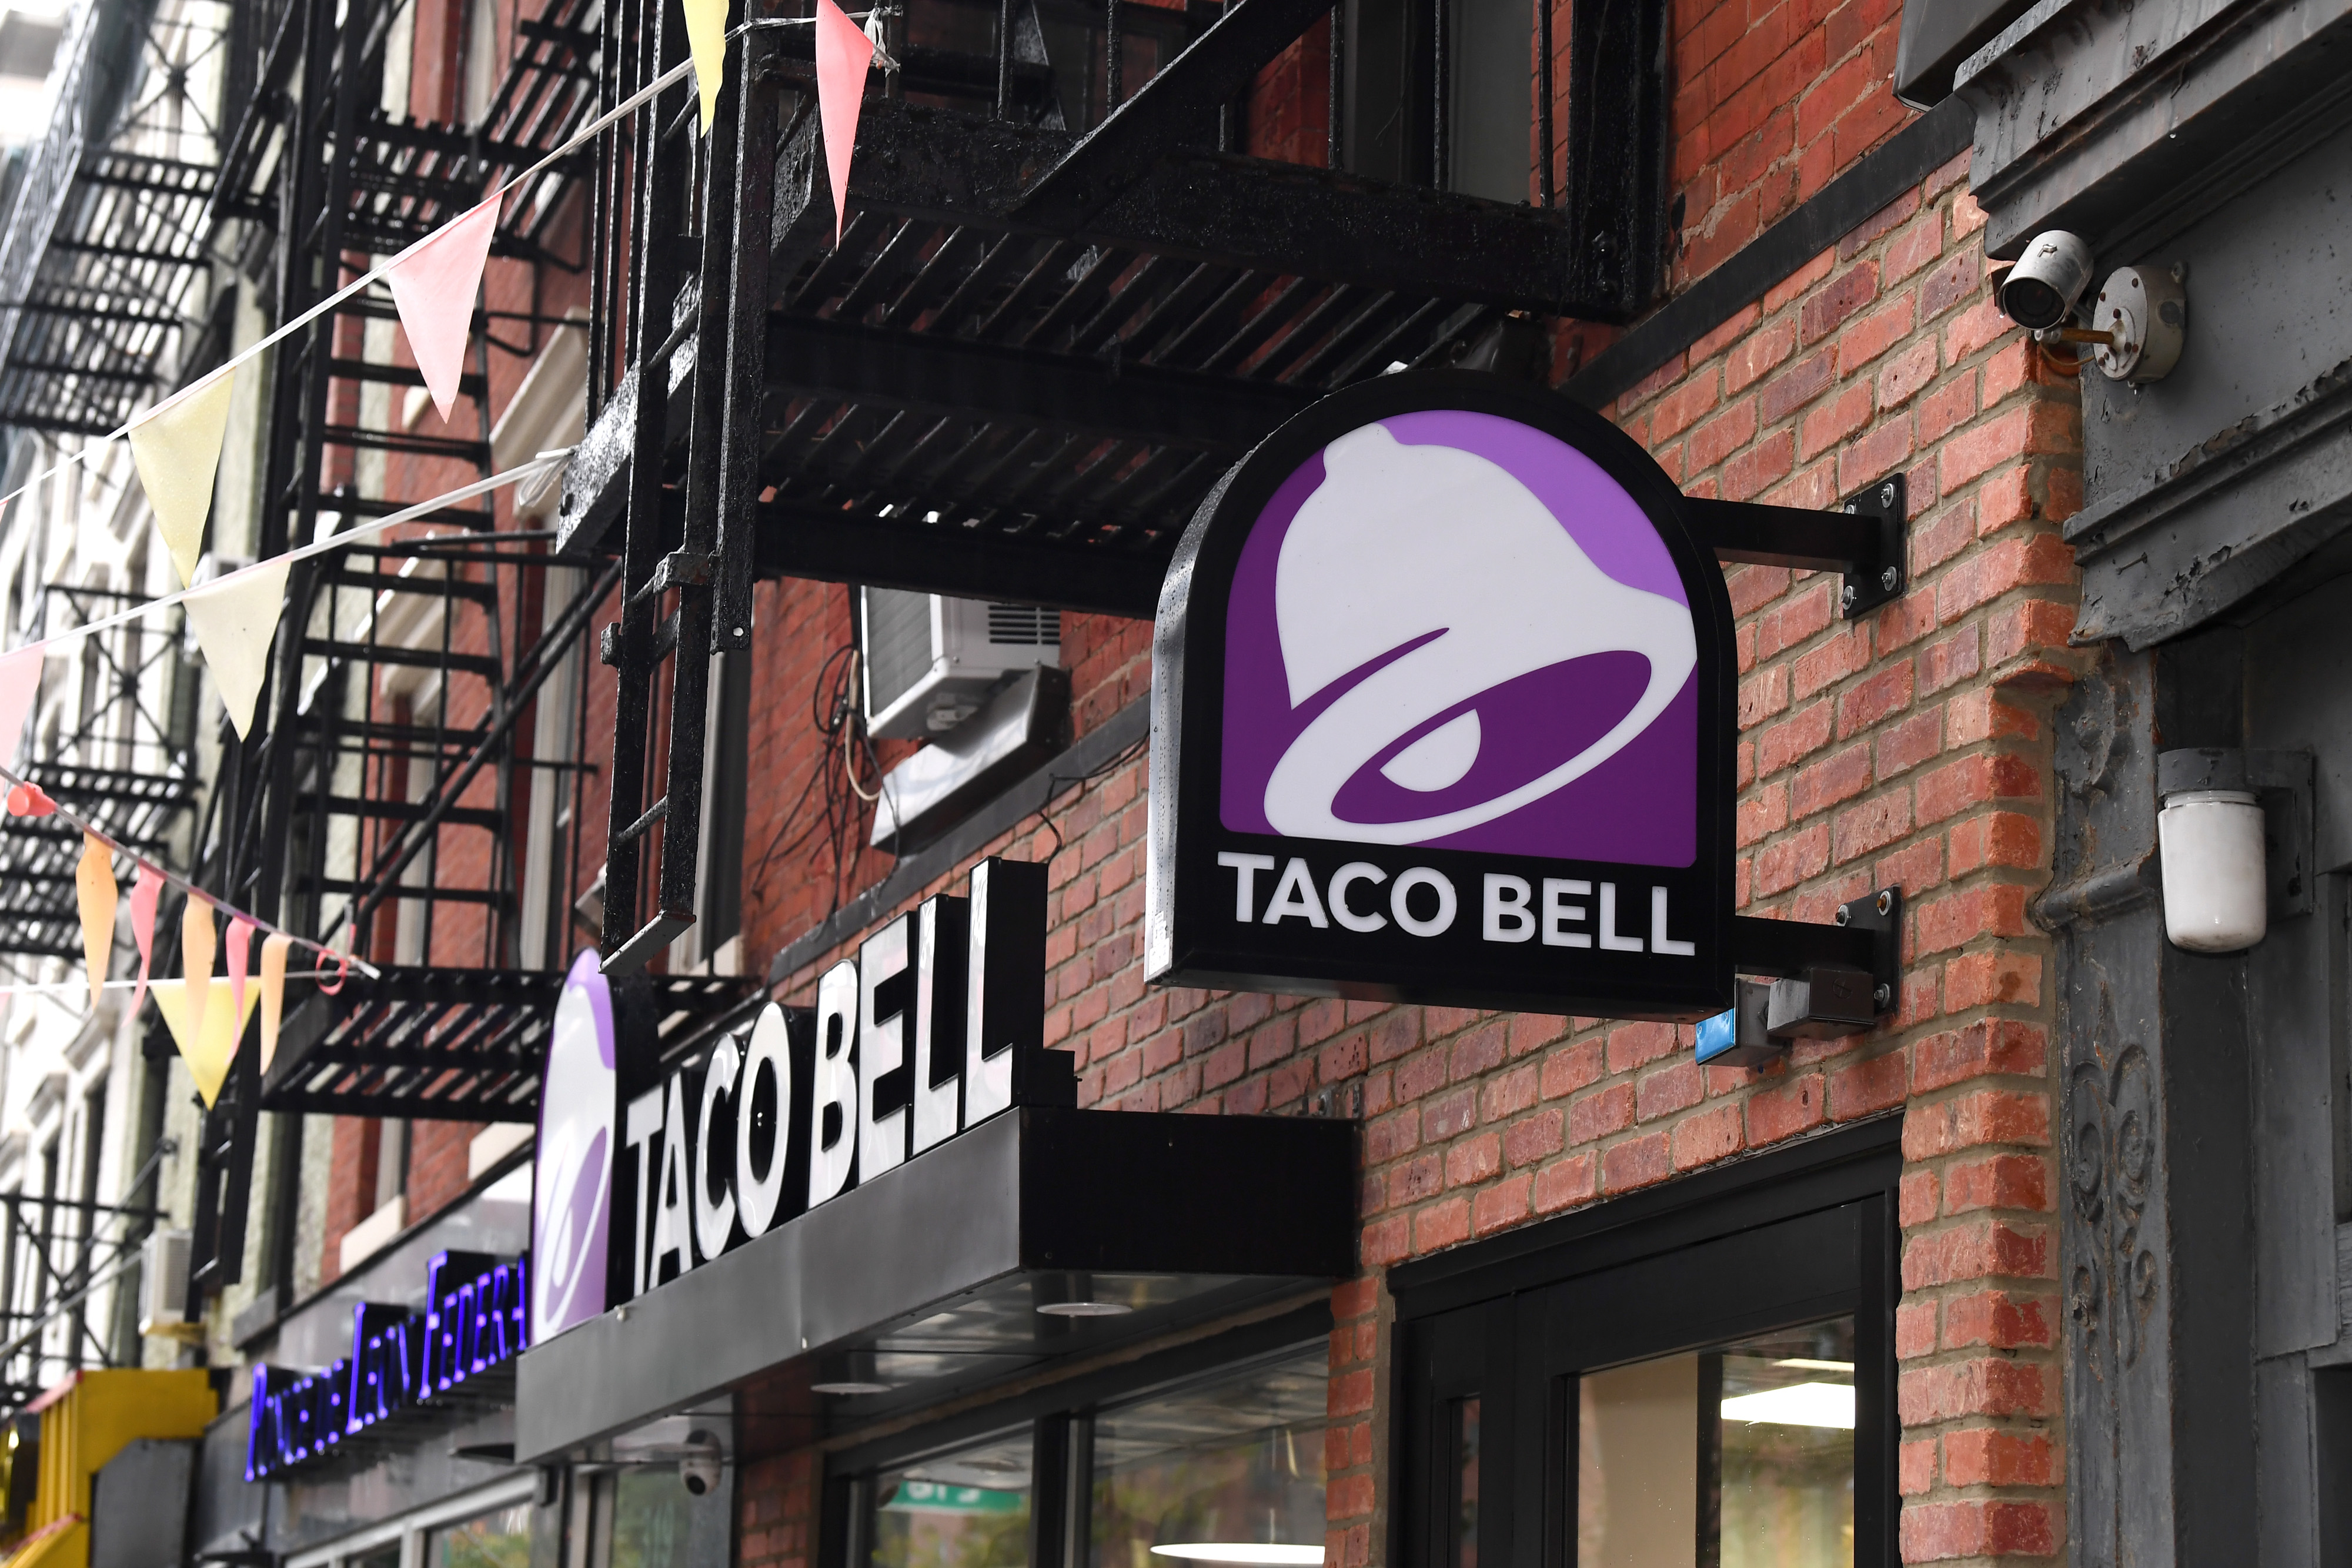 Colombian Ambassador Admits He's 'A Freak for Taco Bell'